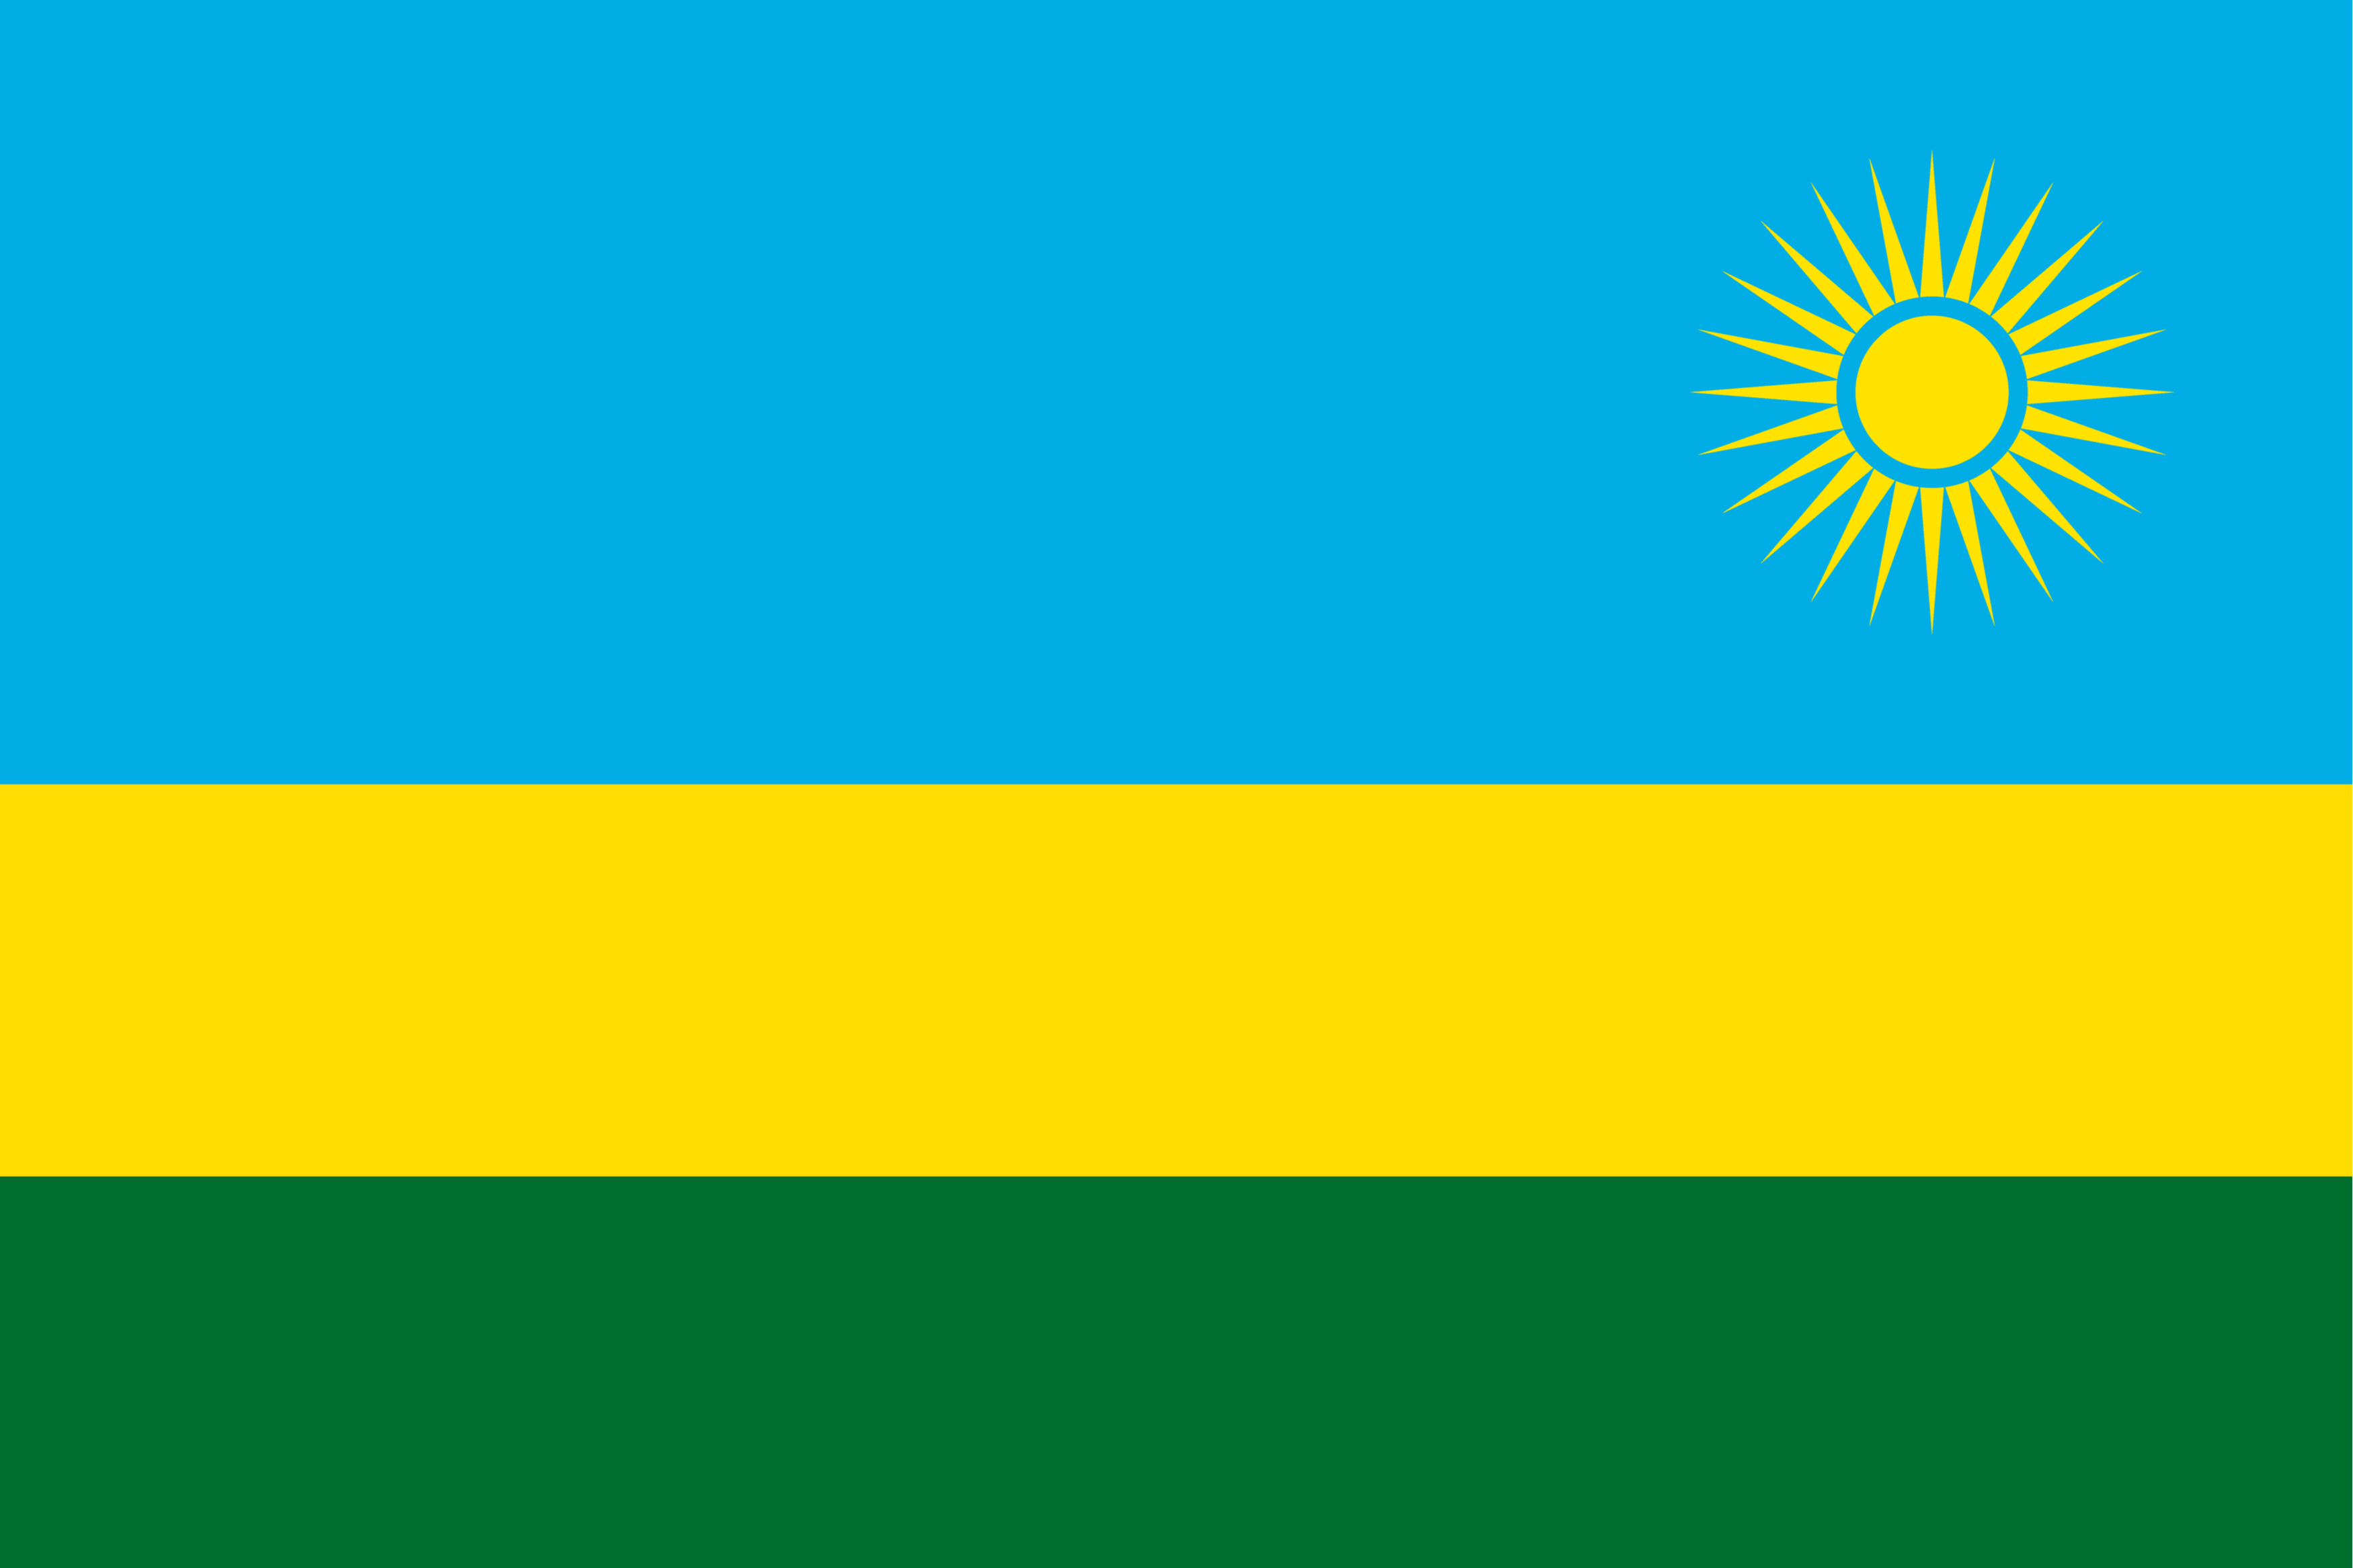 The flag of Rwanda.